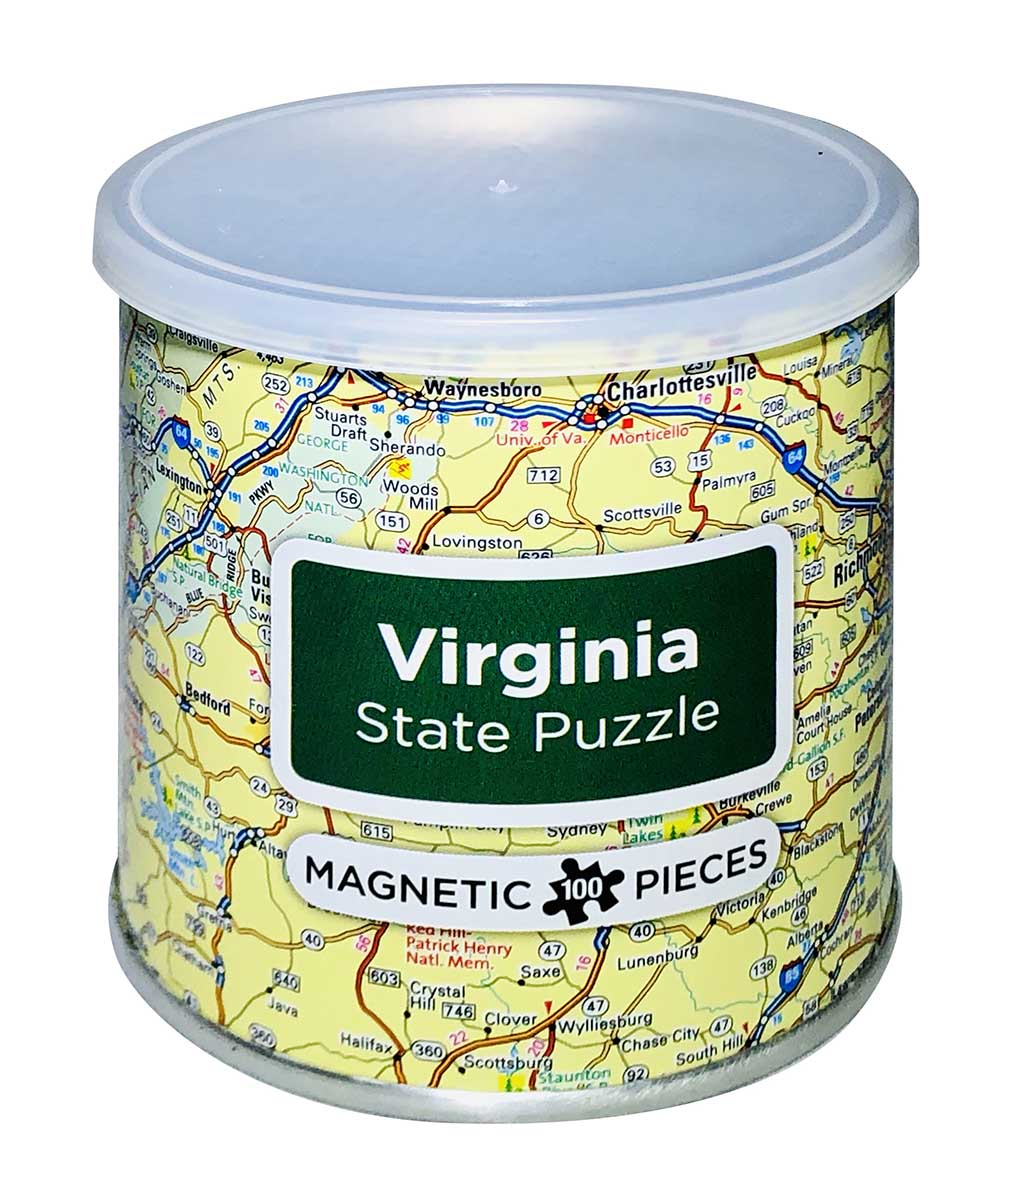 City Magnetic Puzzle Virginia Cities Jigsaw Puzzle